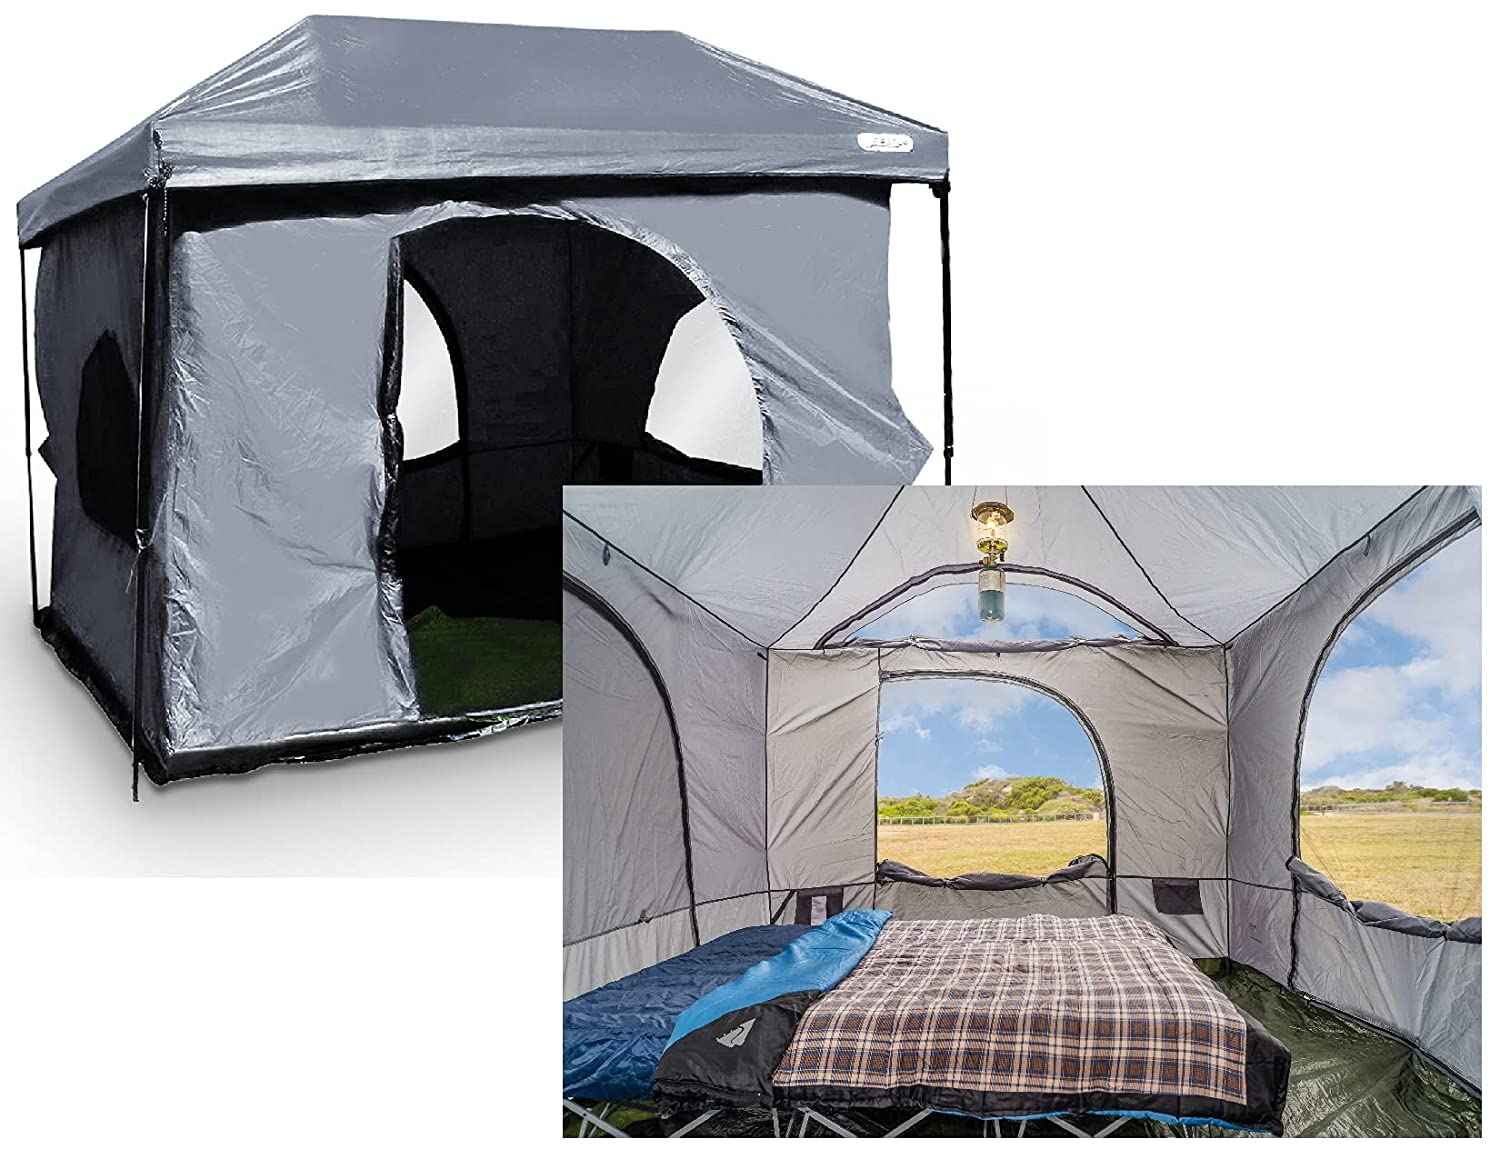 The Original-Authentic Standing Room 6-person Cabin Tent